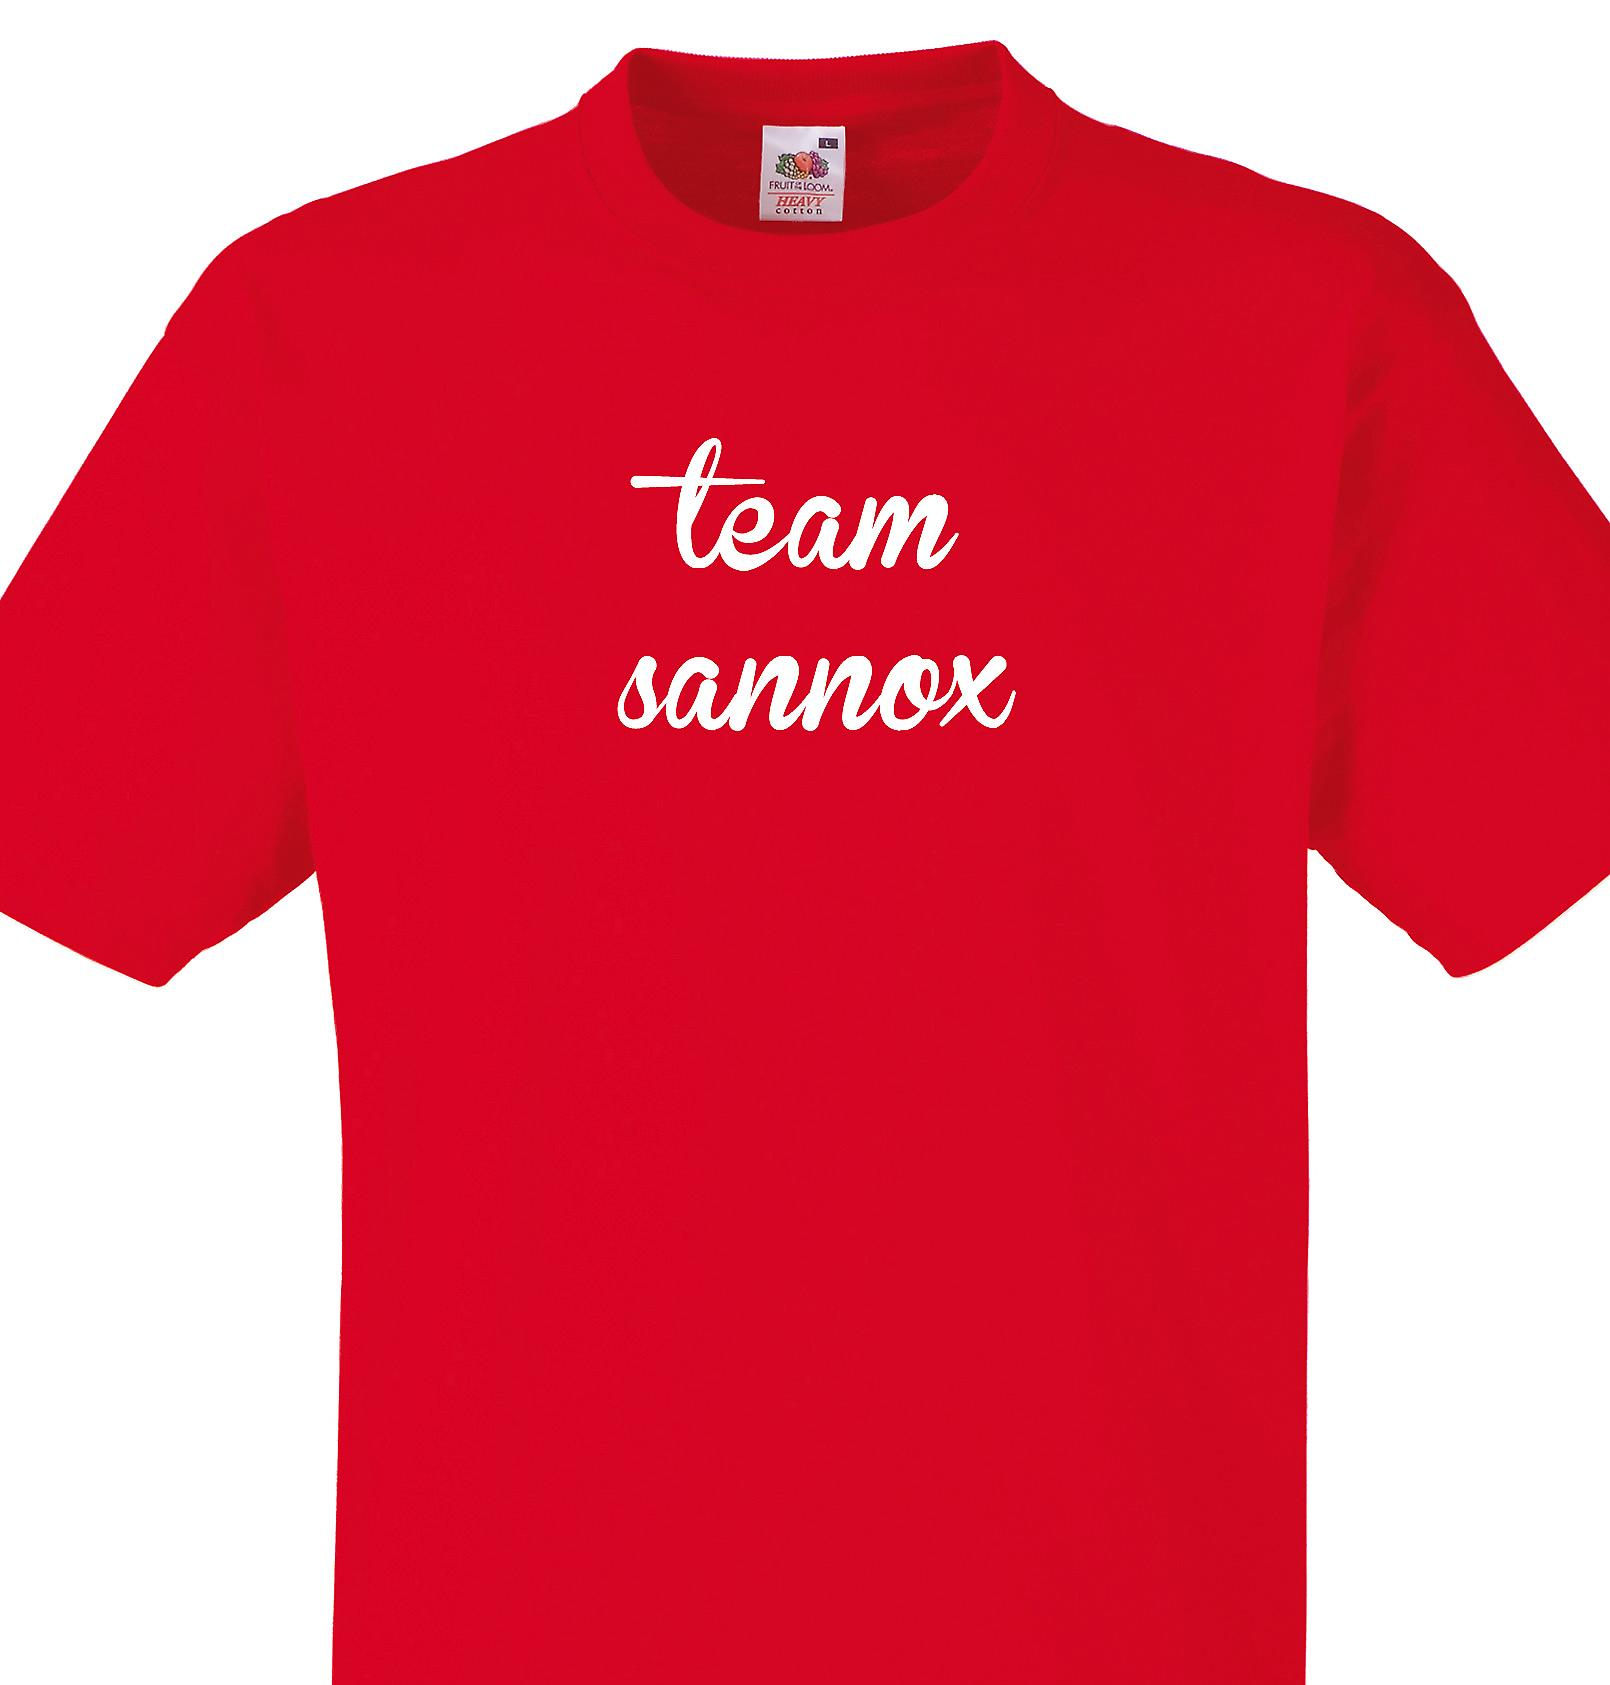 Team Sannox Red T shirt